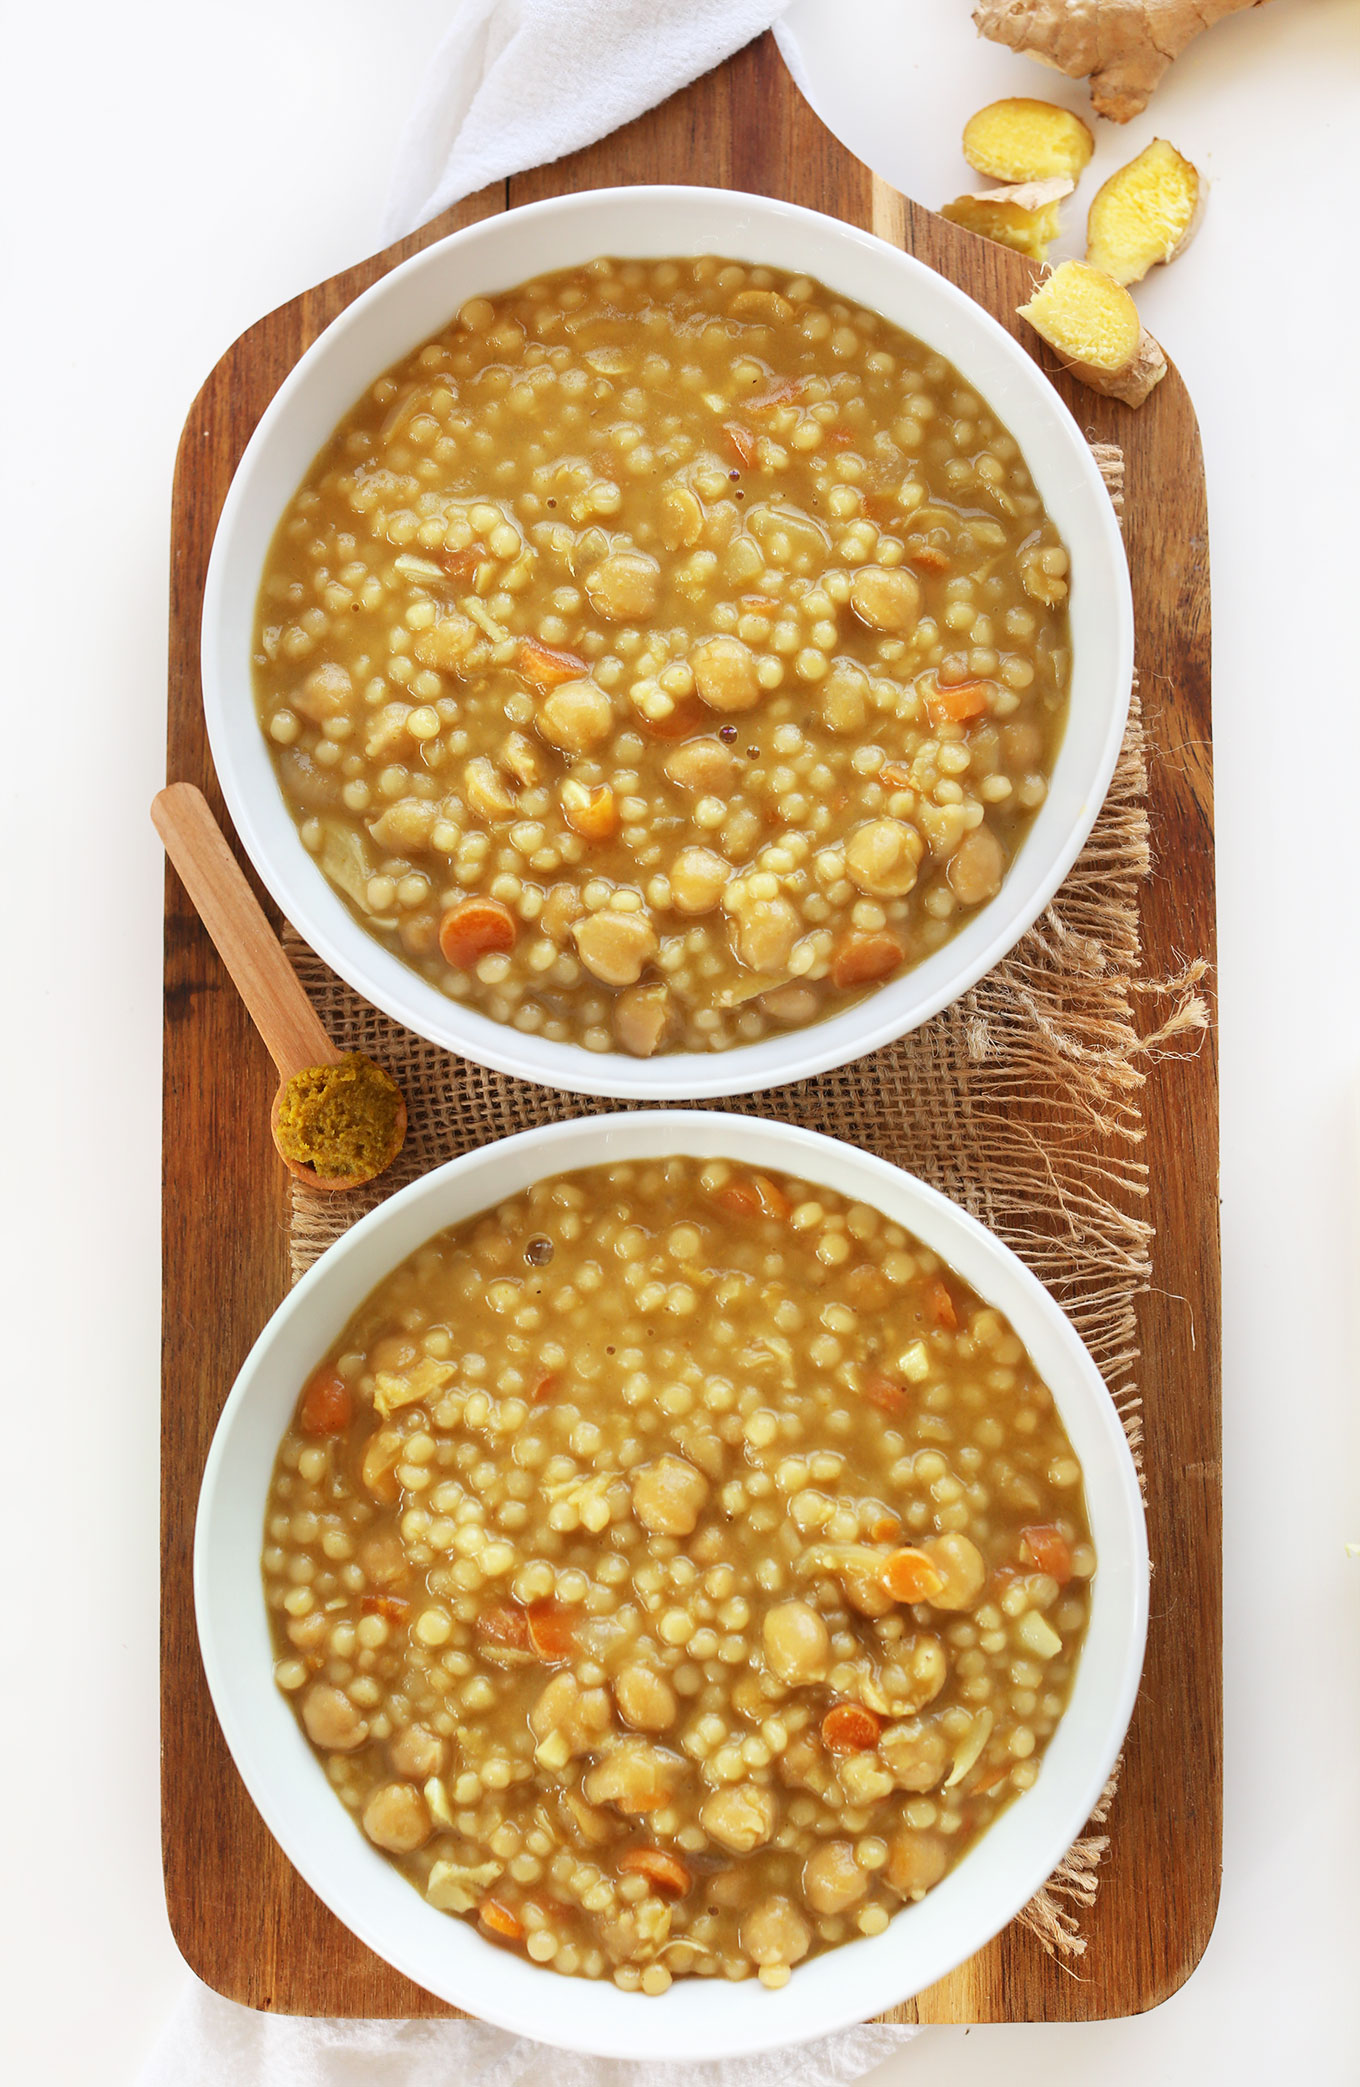 Bowls of Green Chickpea Curry with Israeli Couscous for a healthy vegan meal